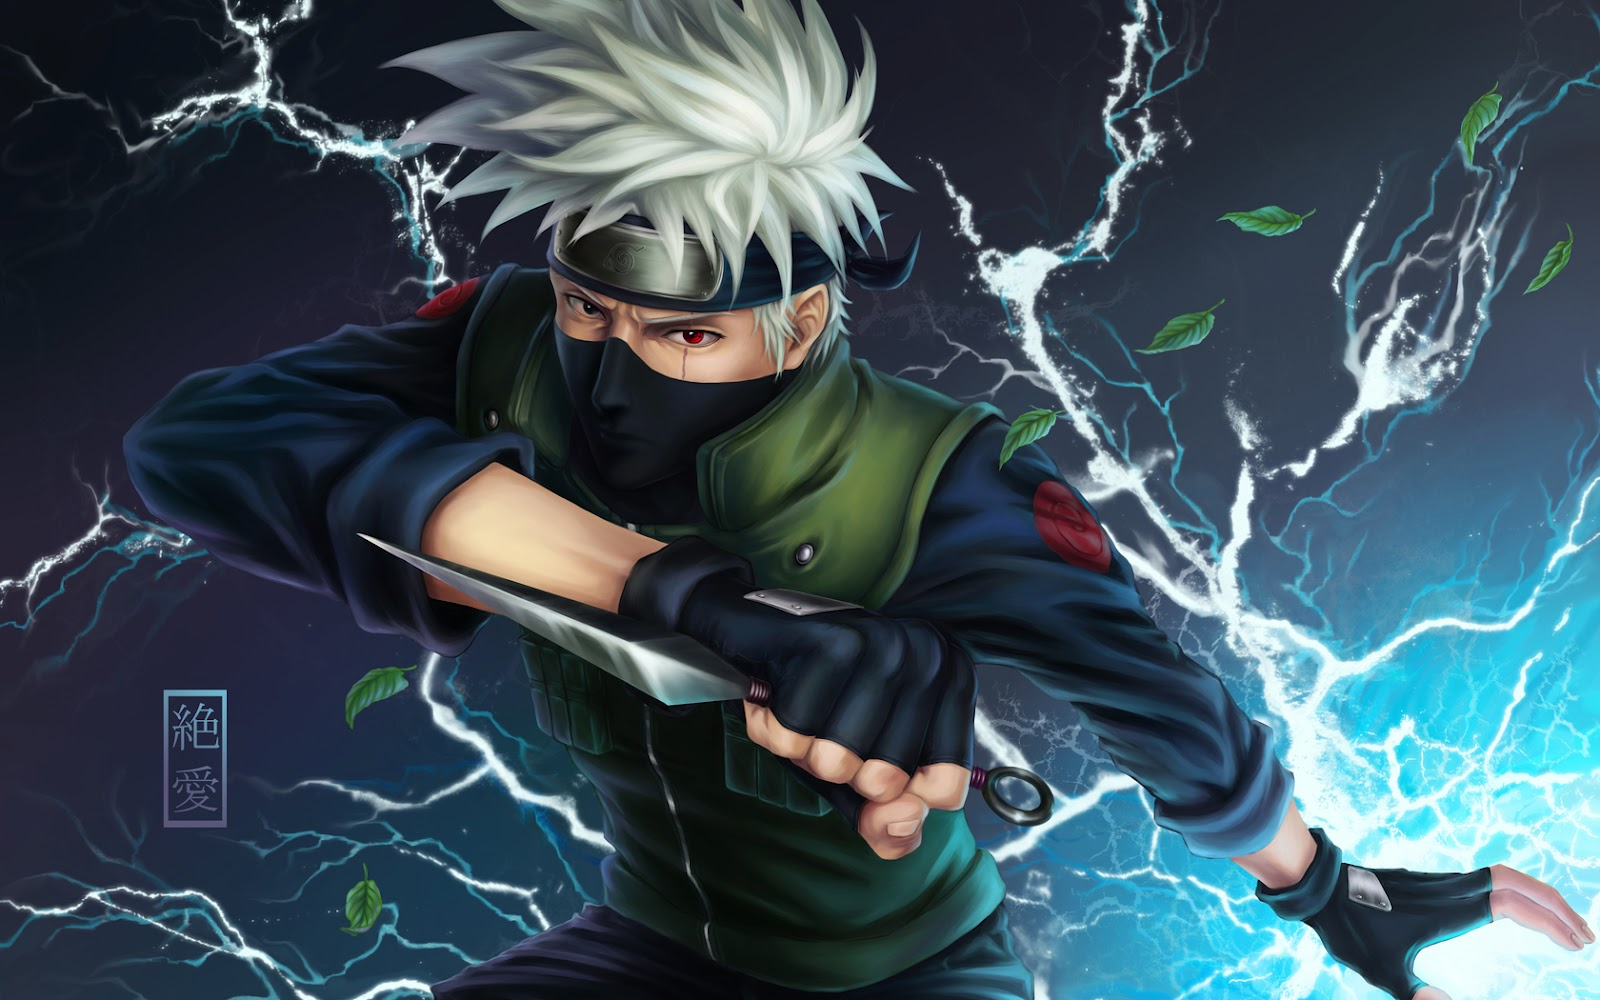 Most Inspiring Wallpaper Naruto High Definition - xIOR8F  Pic_924751.jpg